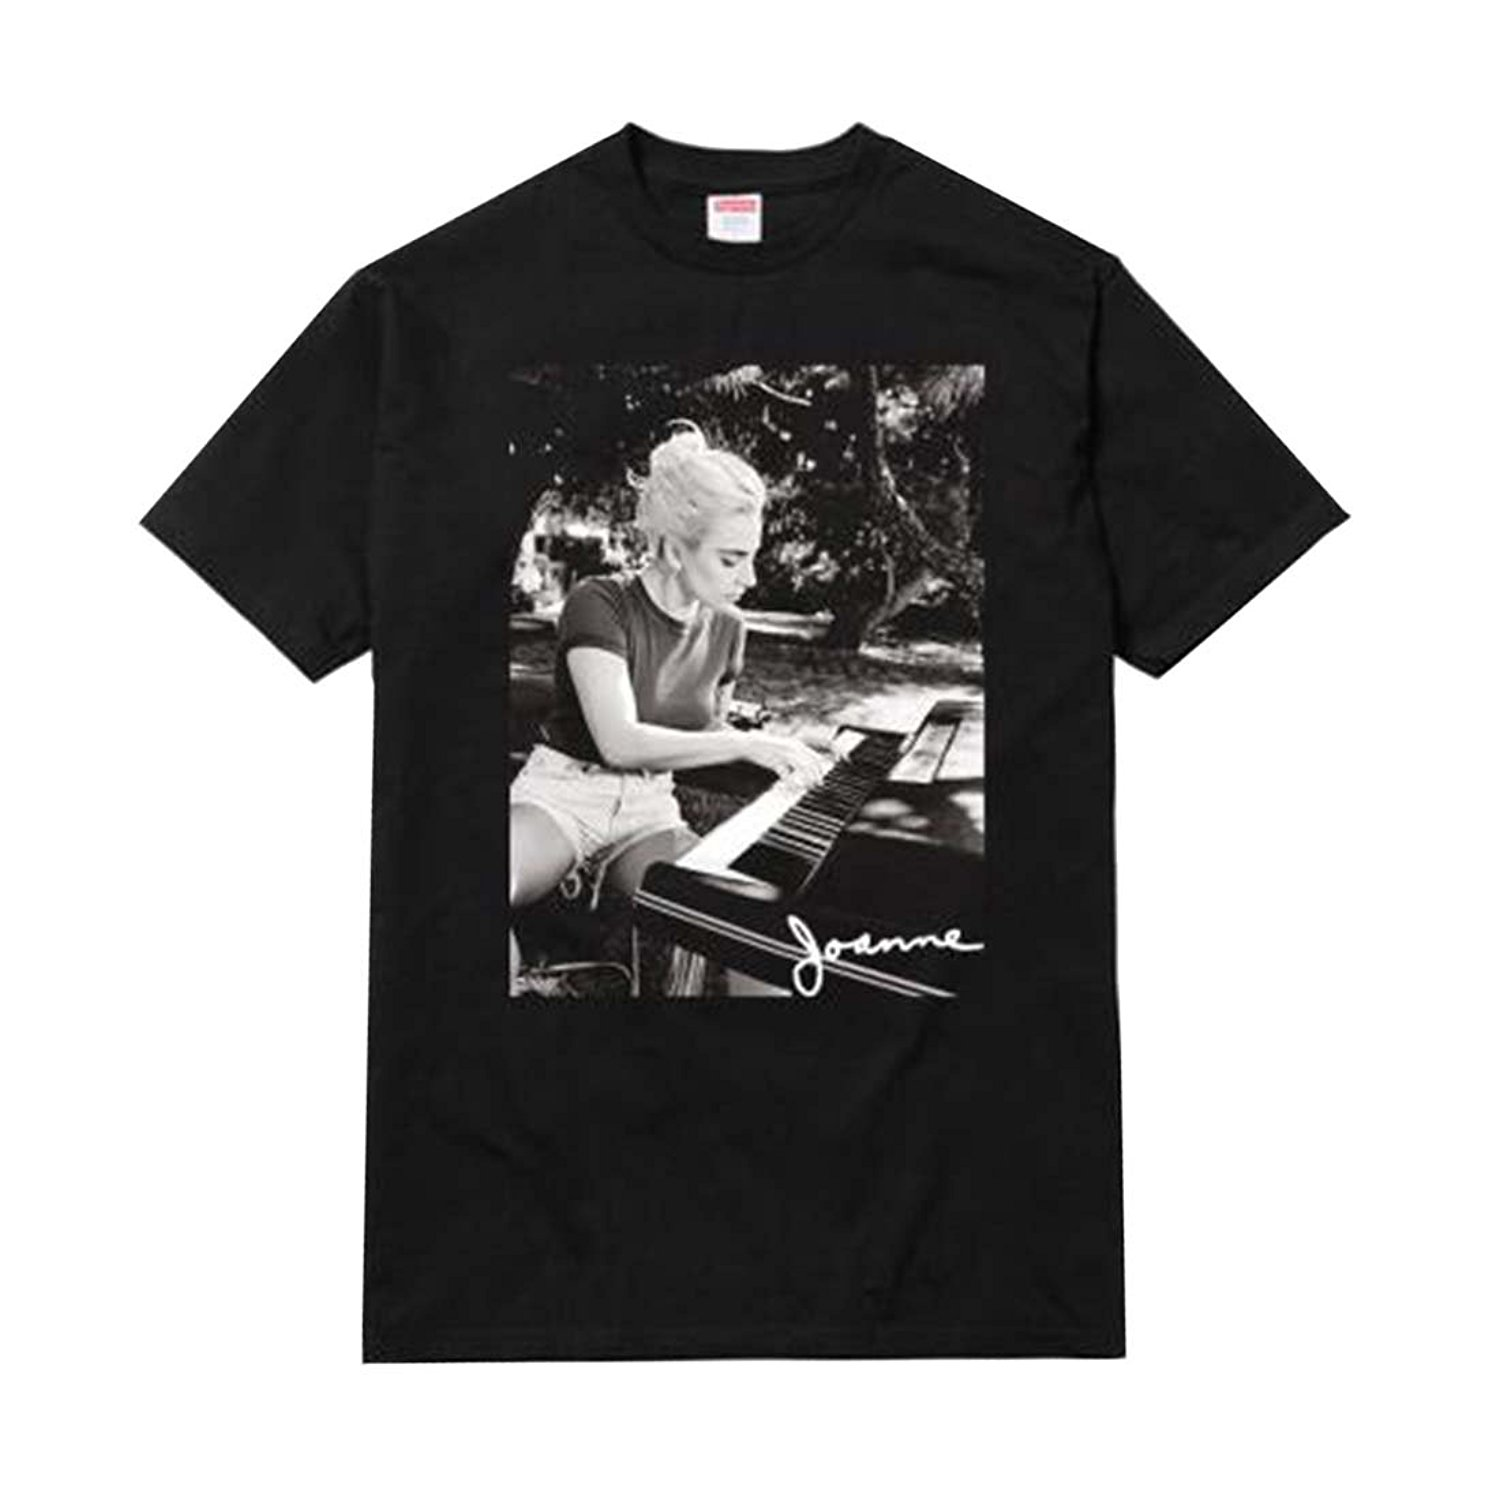 Gildan Lady Gaga Joanne Piano Photo Adult T-Shirt Hip Hop Short Sleeve Casual Printed Tee Size S-3Xl